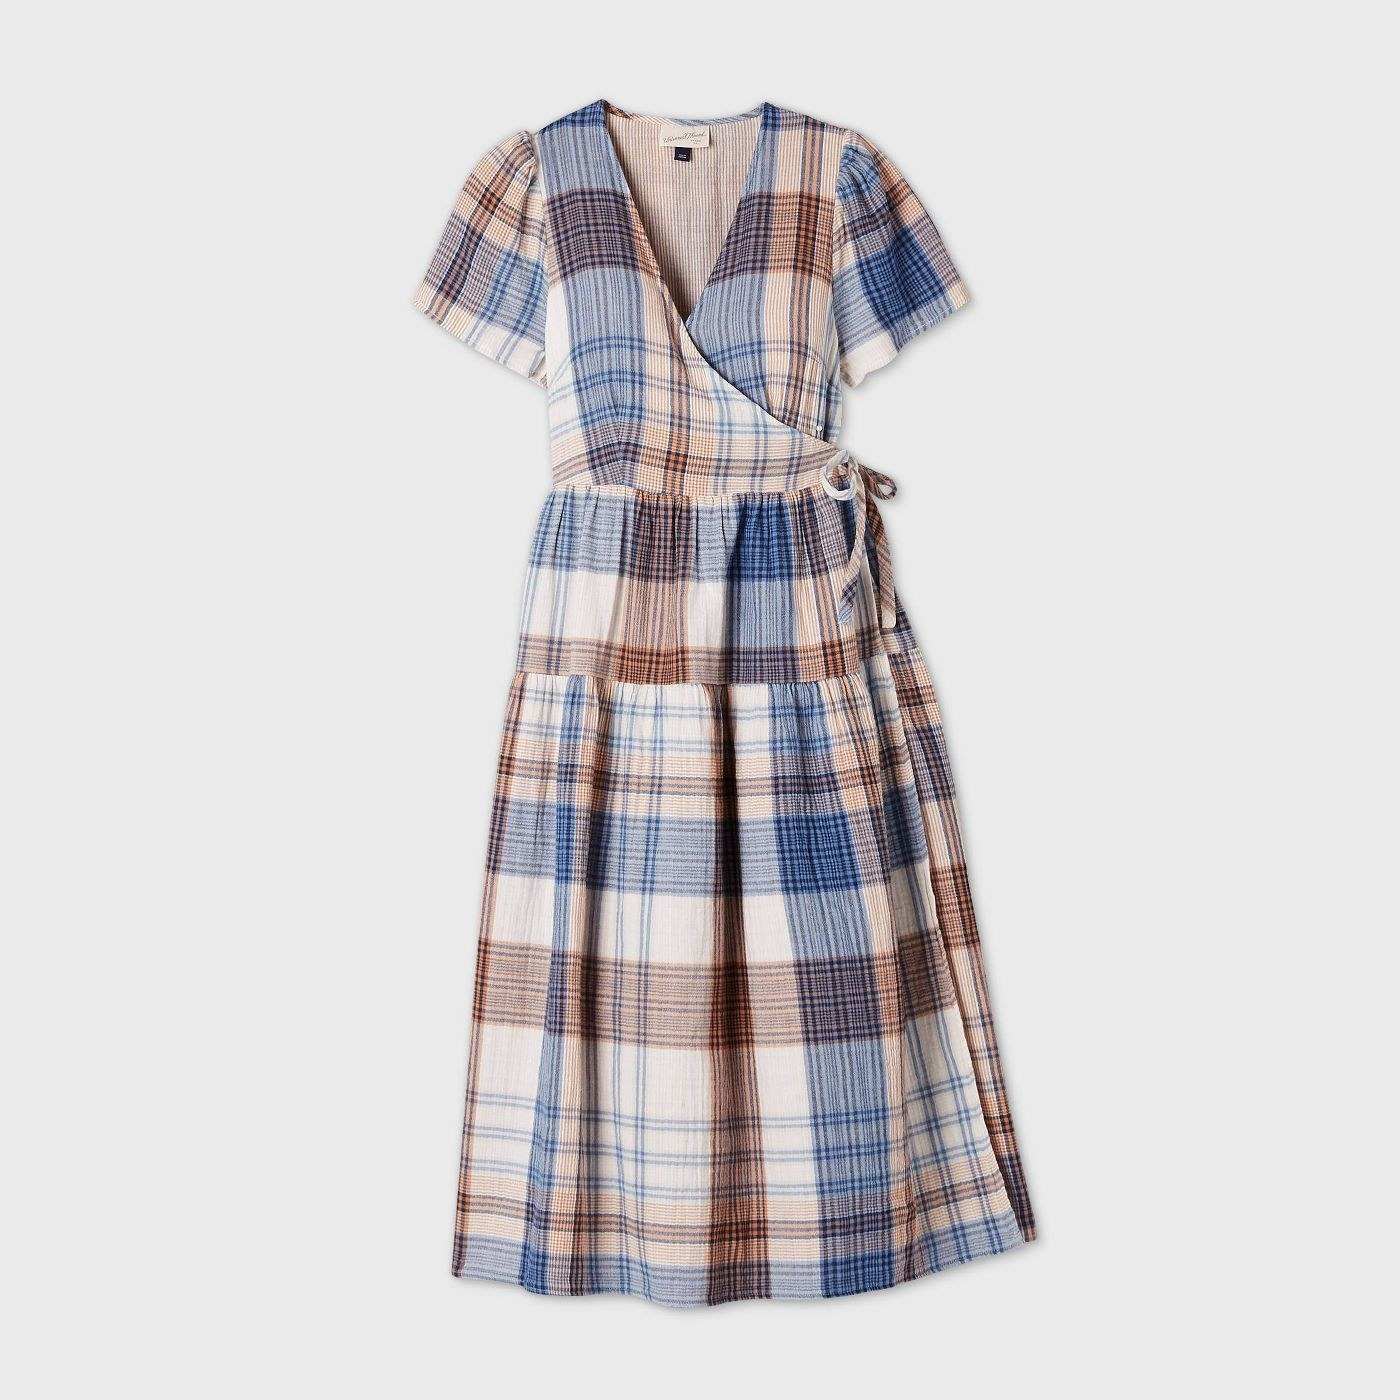 Brown and blue plaid dress